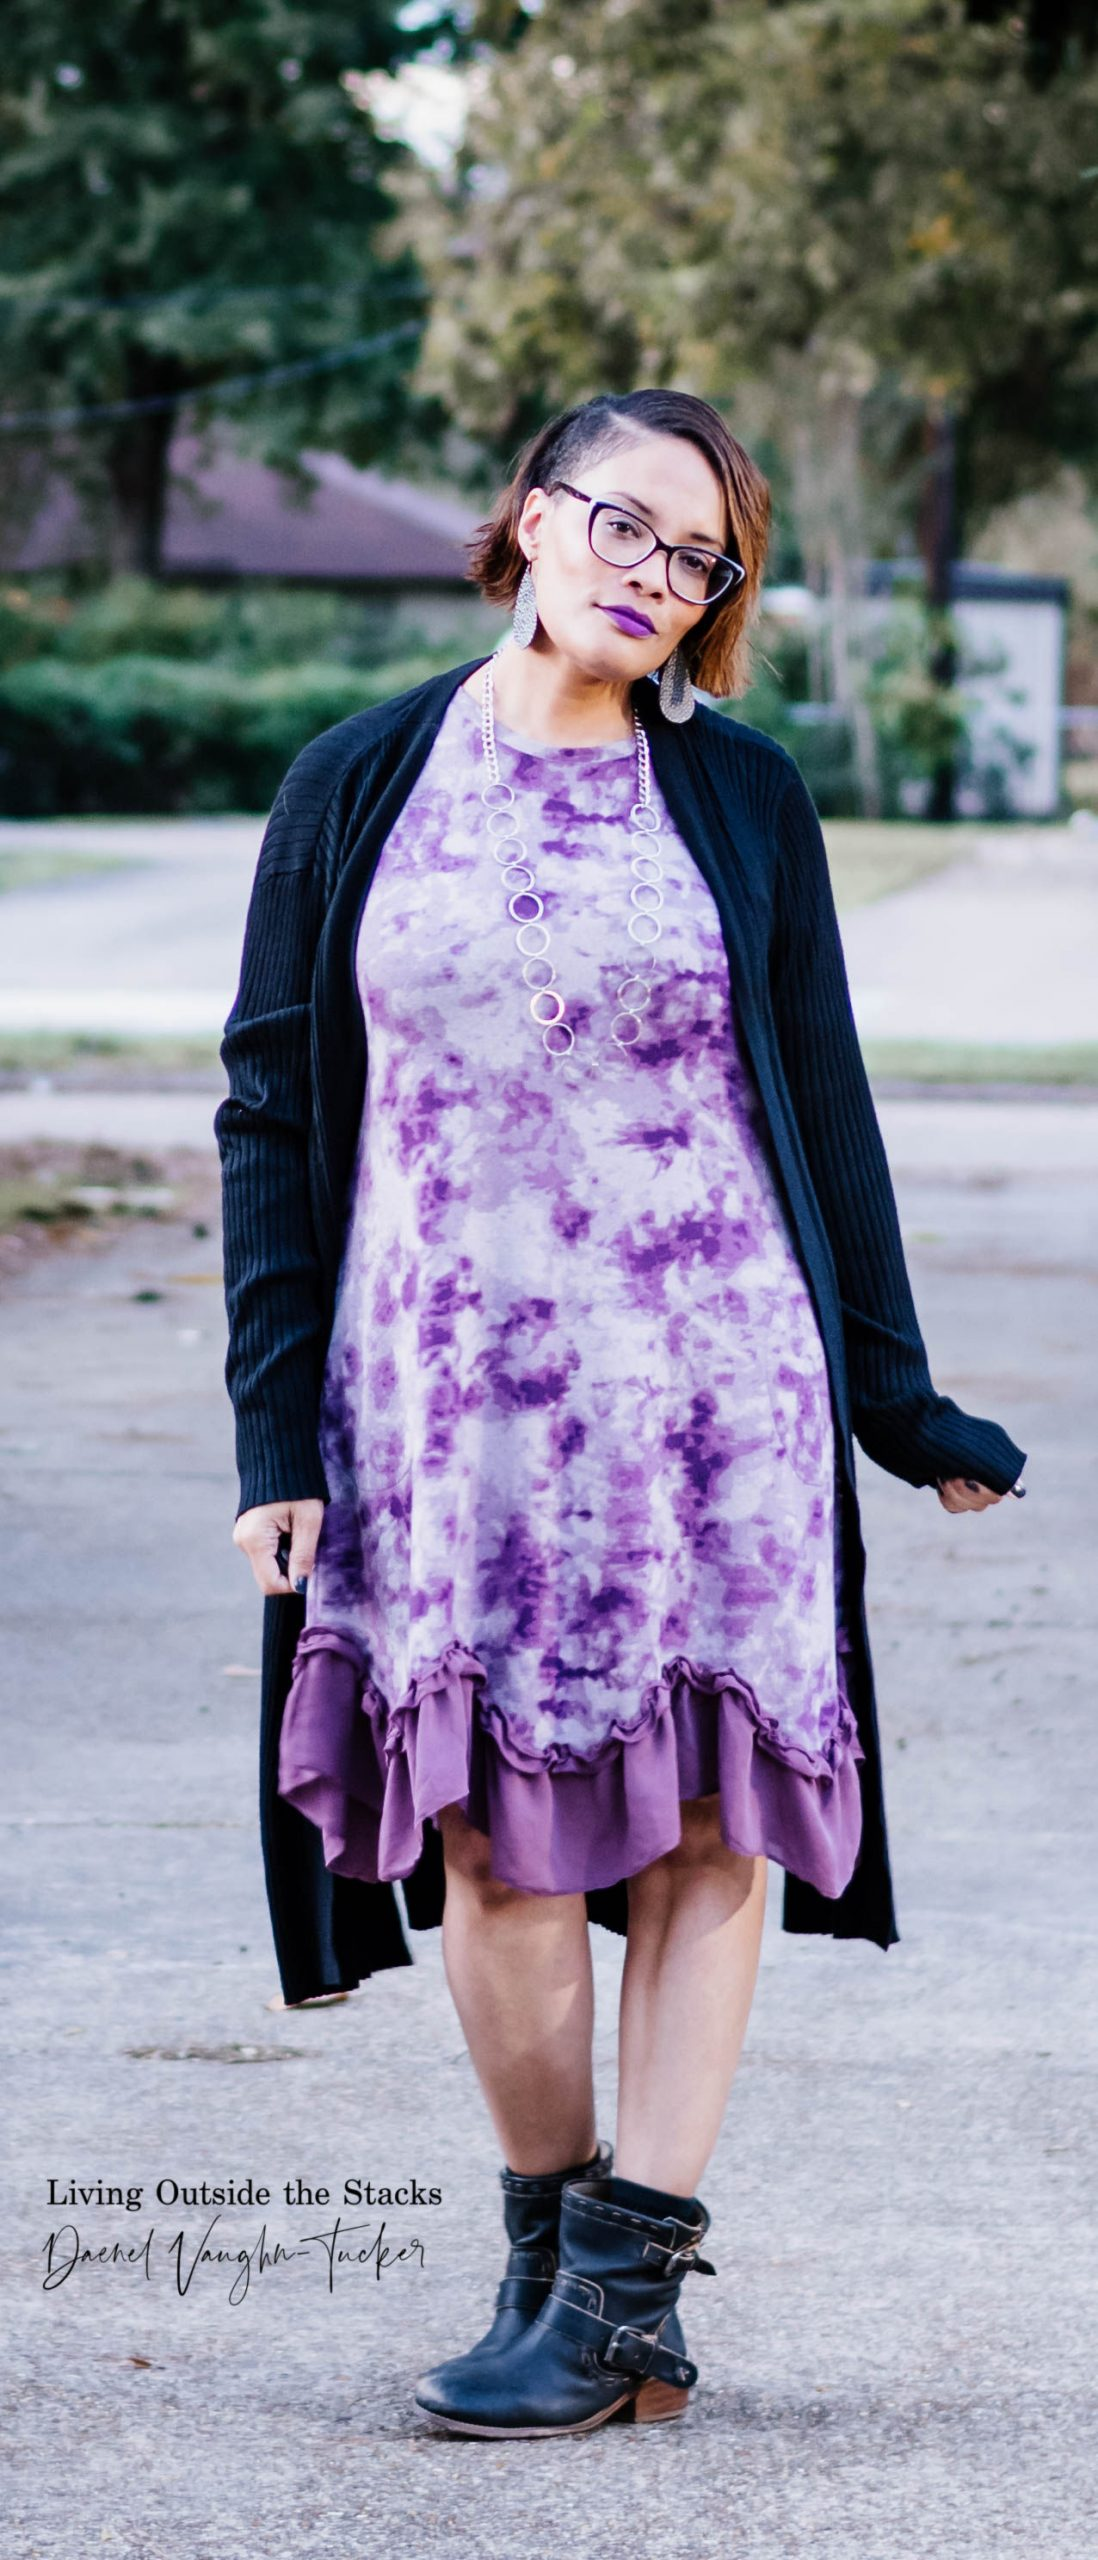 Daenel T {living outside the stacks} Purple Logo Dress and Black Ankle Boots